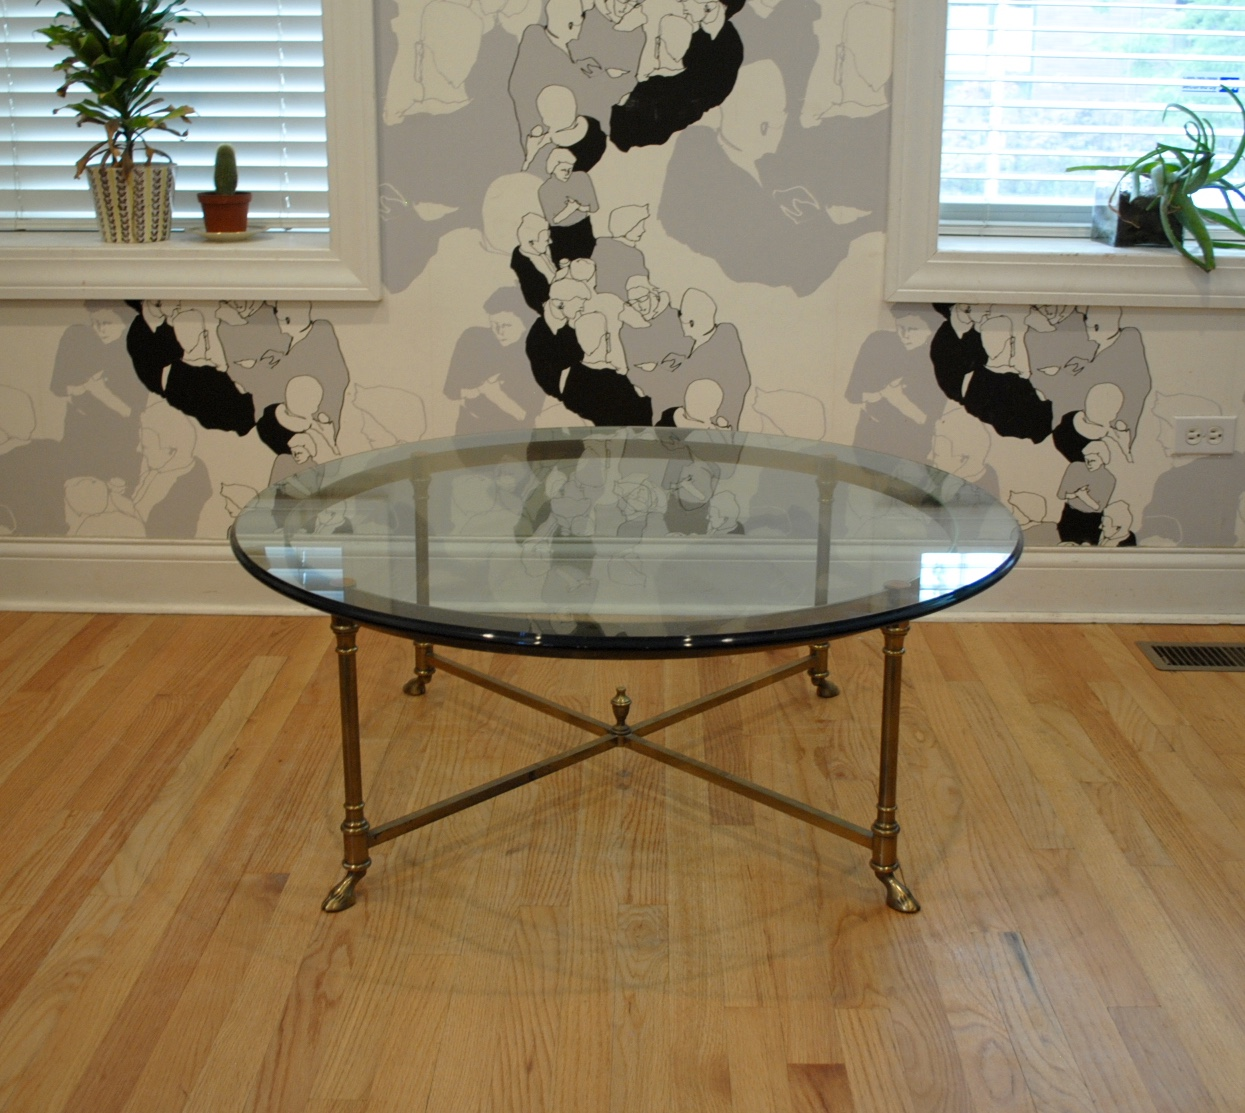 Vintage Hollywood Regency Brass Hoof Foot Coffee Table. Made In Italy.  Dimensions Are 40u2033Dia X 15.5u2033 H. Please Contact Me With Any Questions.